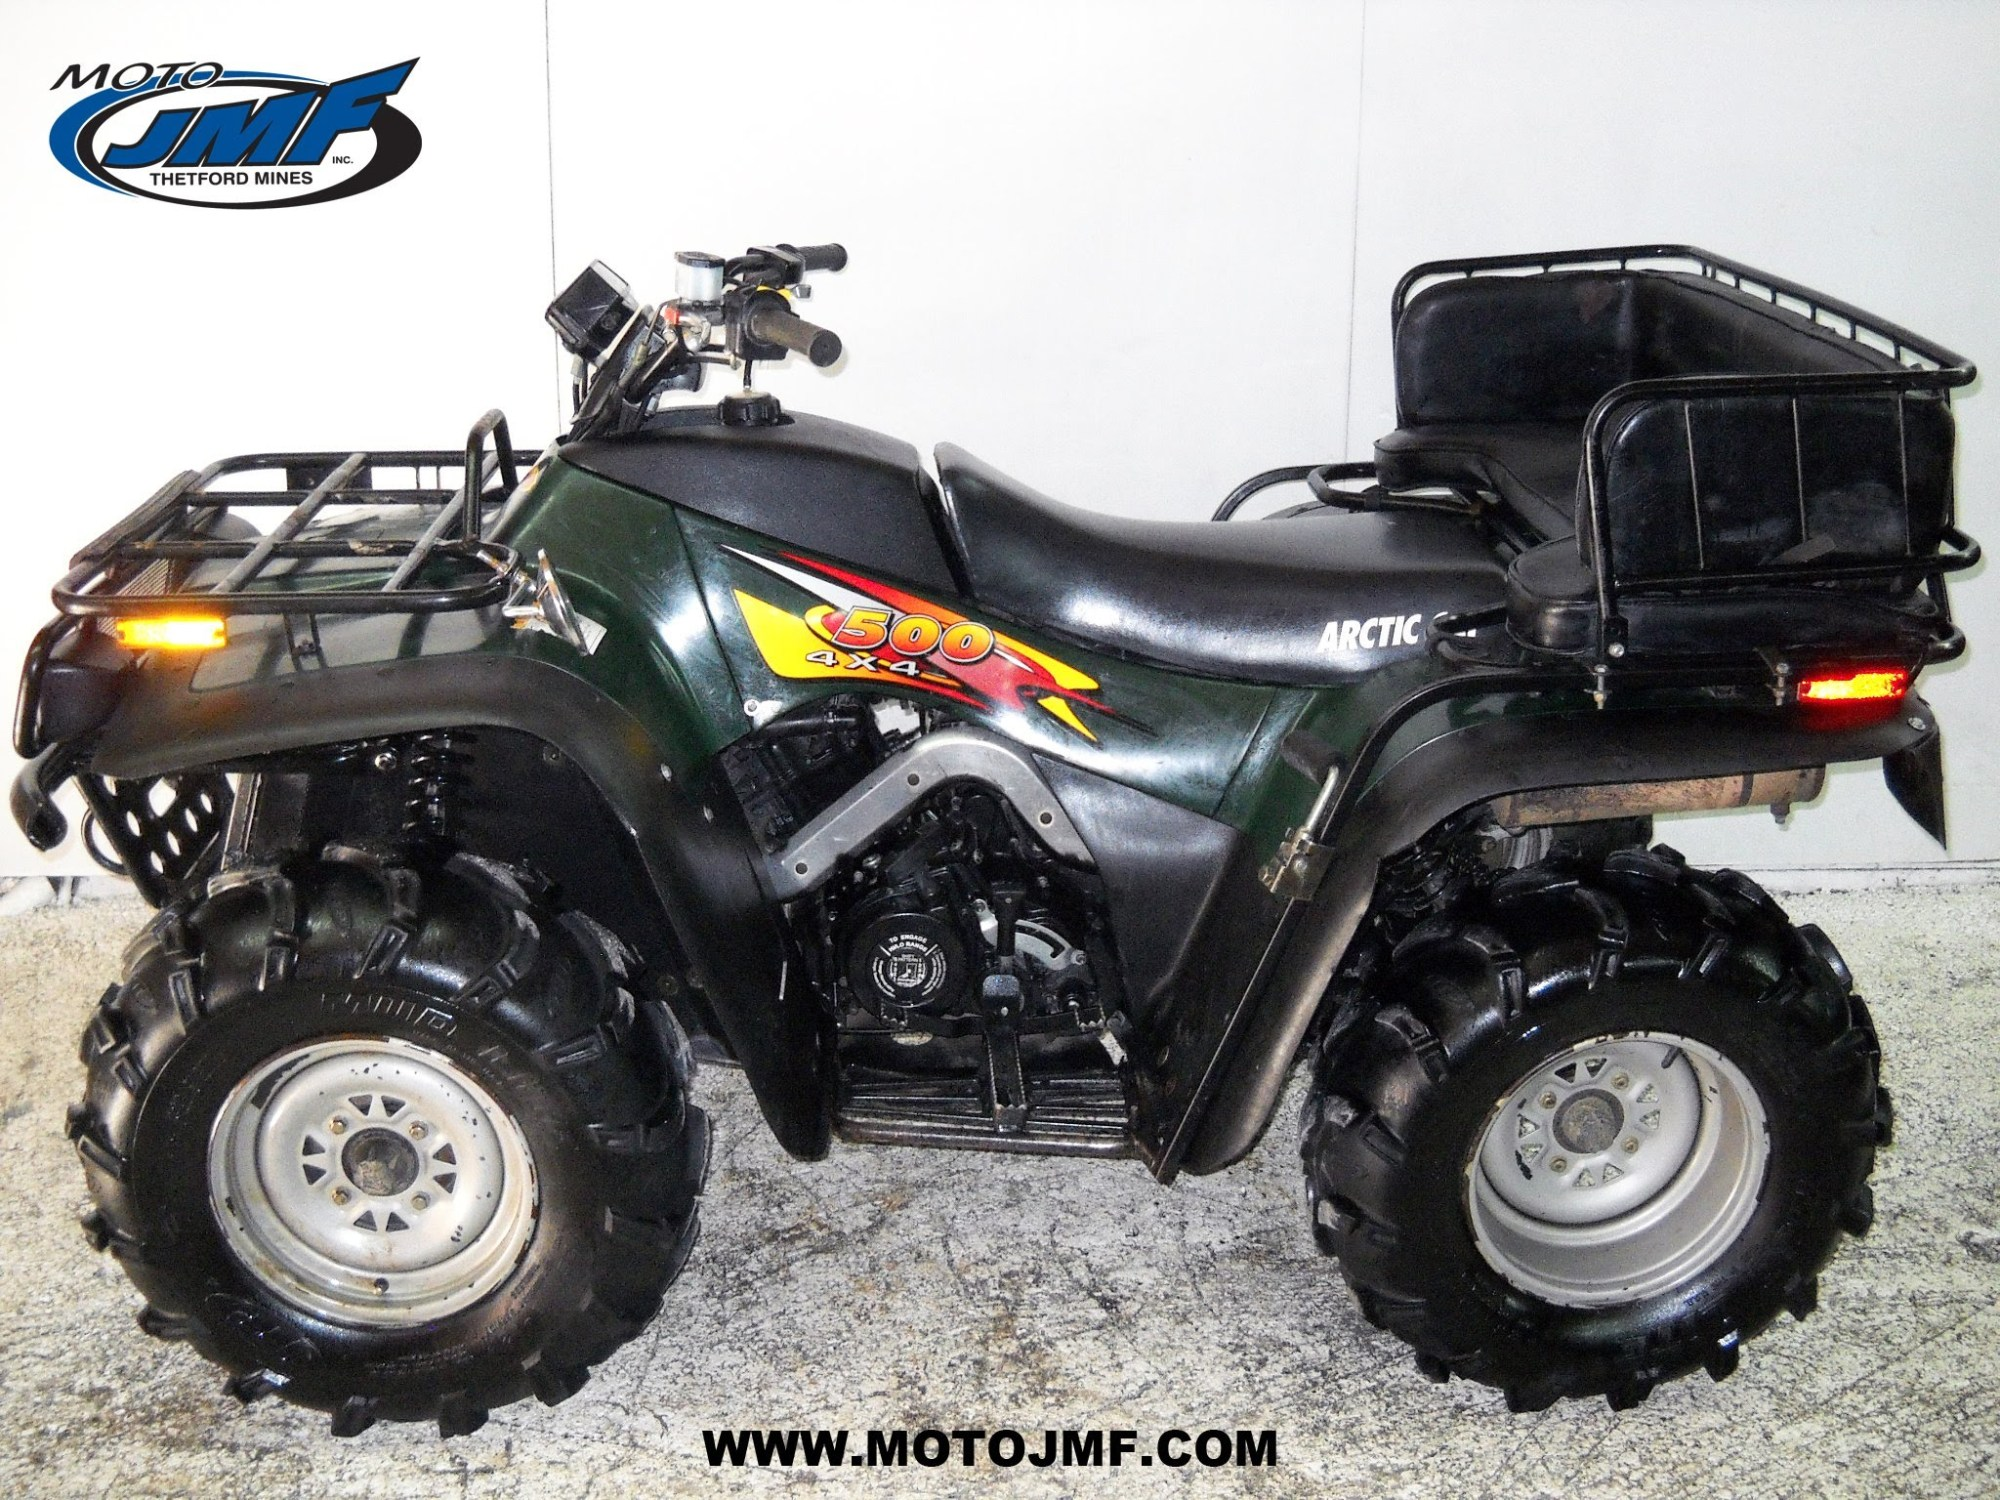 hight resolution of wiring diagram on a 2003 arctic cat 300 4x4 kawasaki 360 arctic cat 400 wiring diagram 2001 arctic cat 300 4x4 wiring diagram